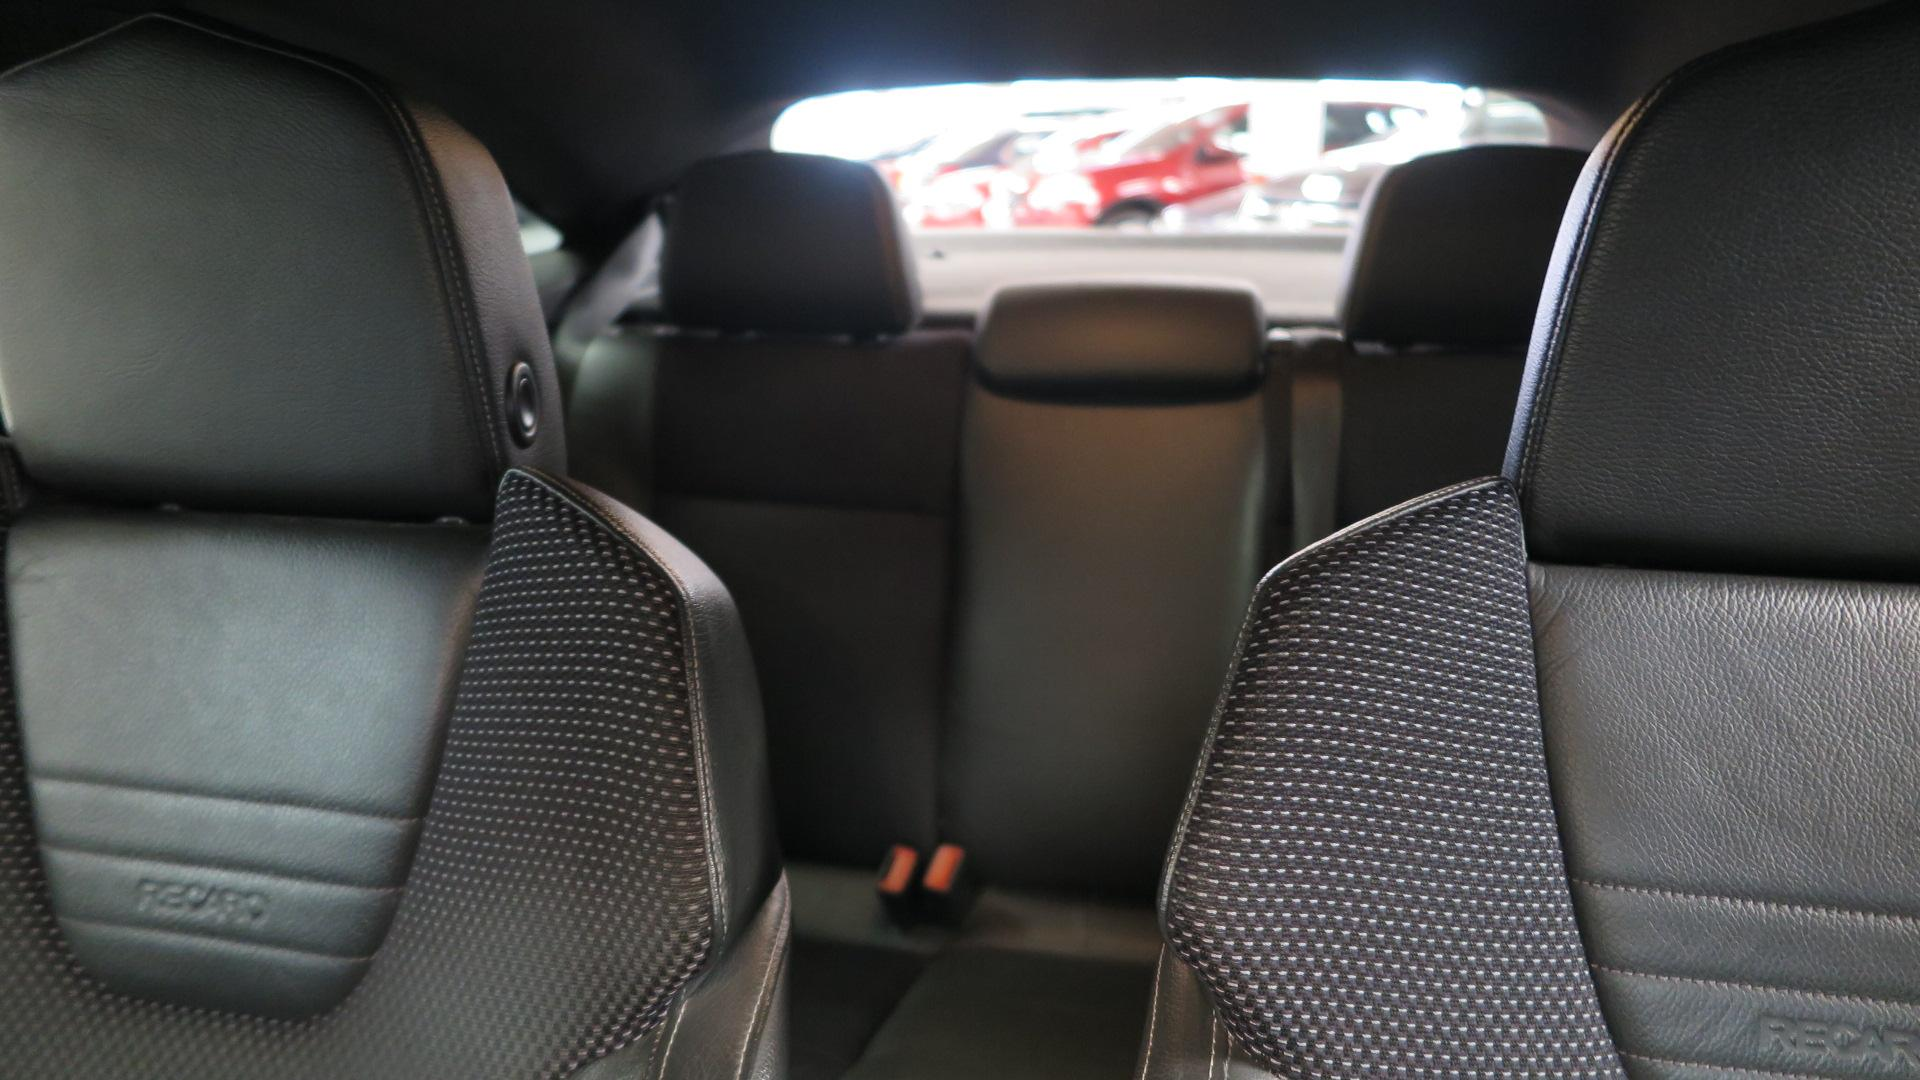 Used Vauxhall Astra 2 0T 16V VXR 3dr Sport Leather Recaro Seats 3